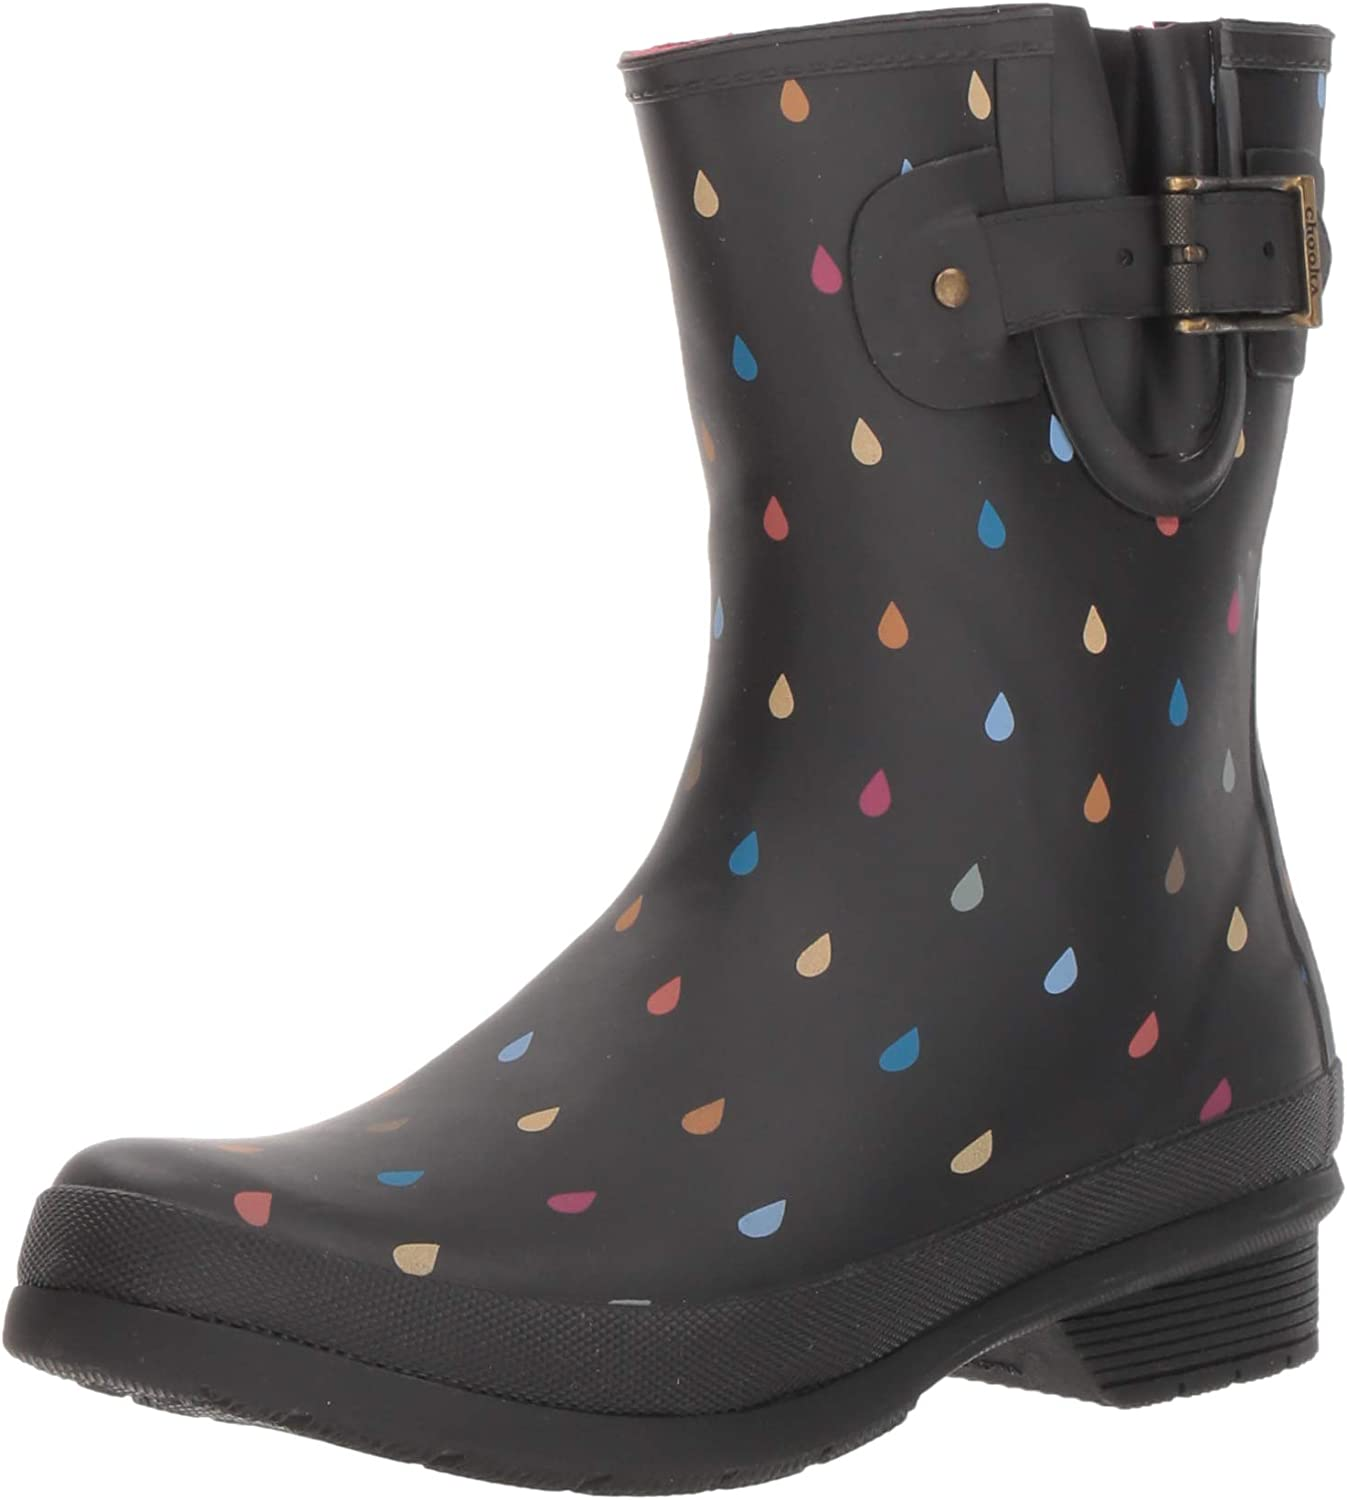 Chooka Women's Waterproof Mid-Height Printed Rain Boot with Memory Foam Calf